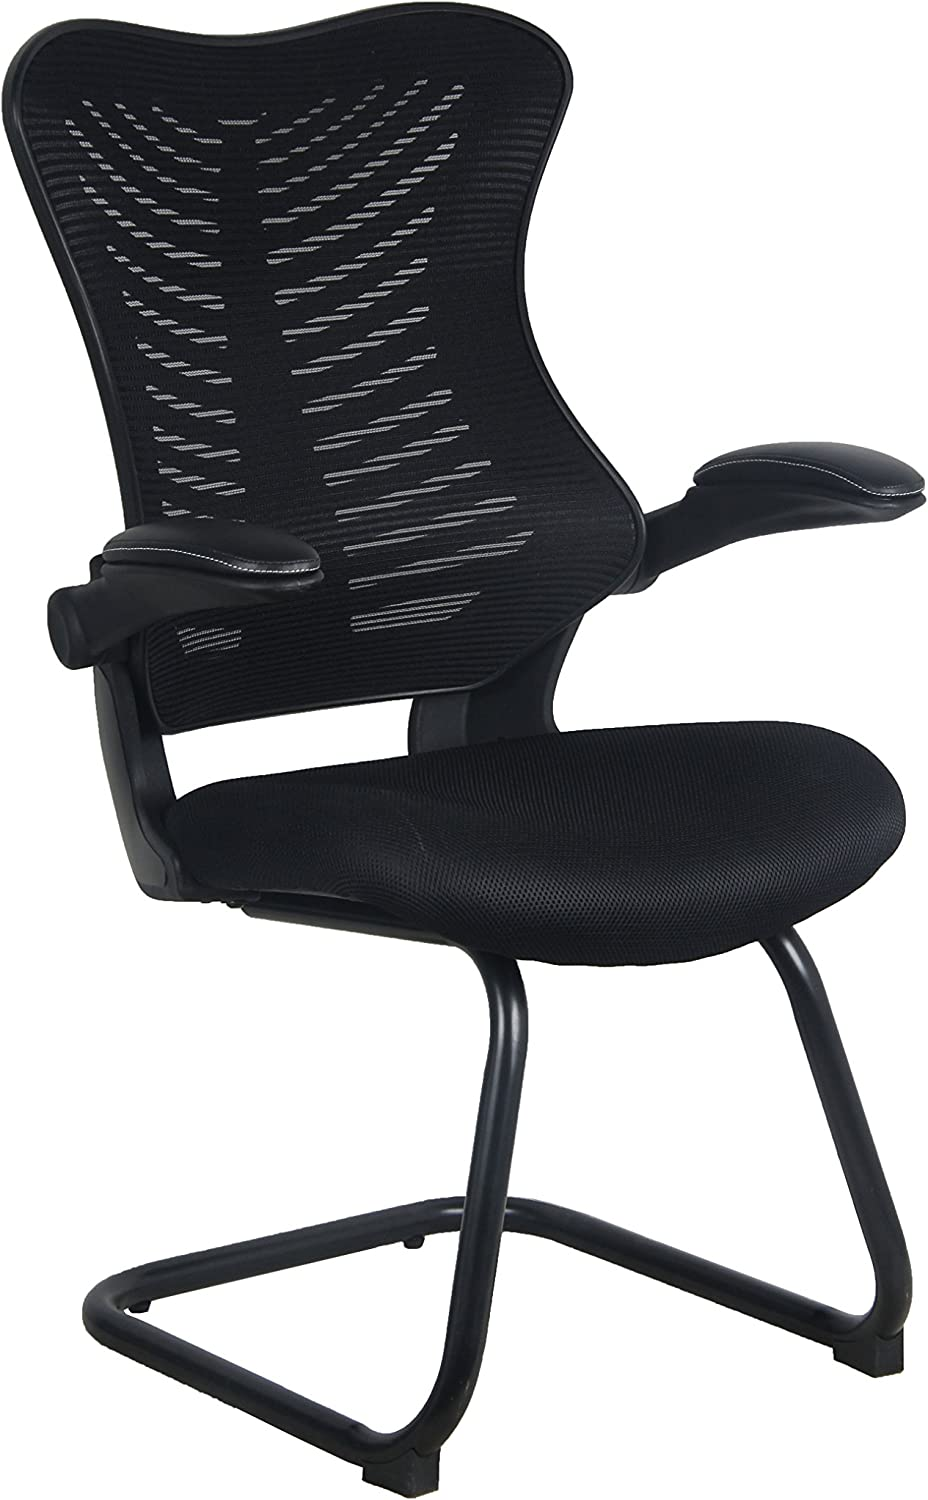 15 Most Comfortable Office Chairs Without Wheels